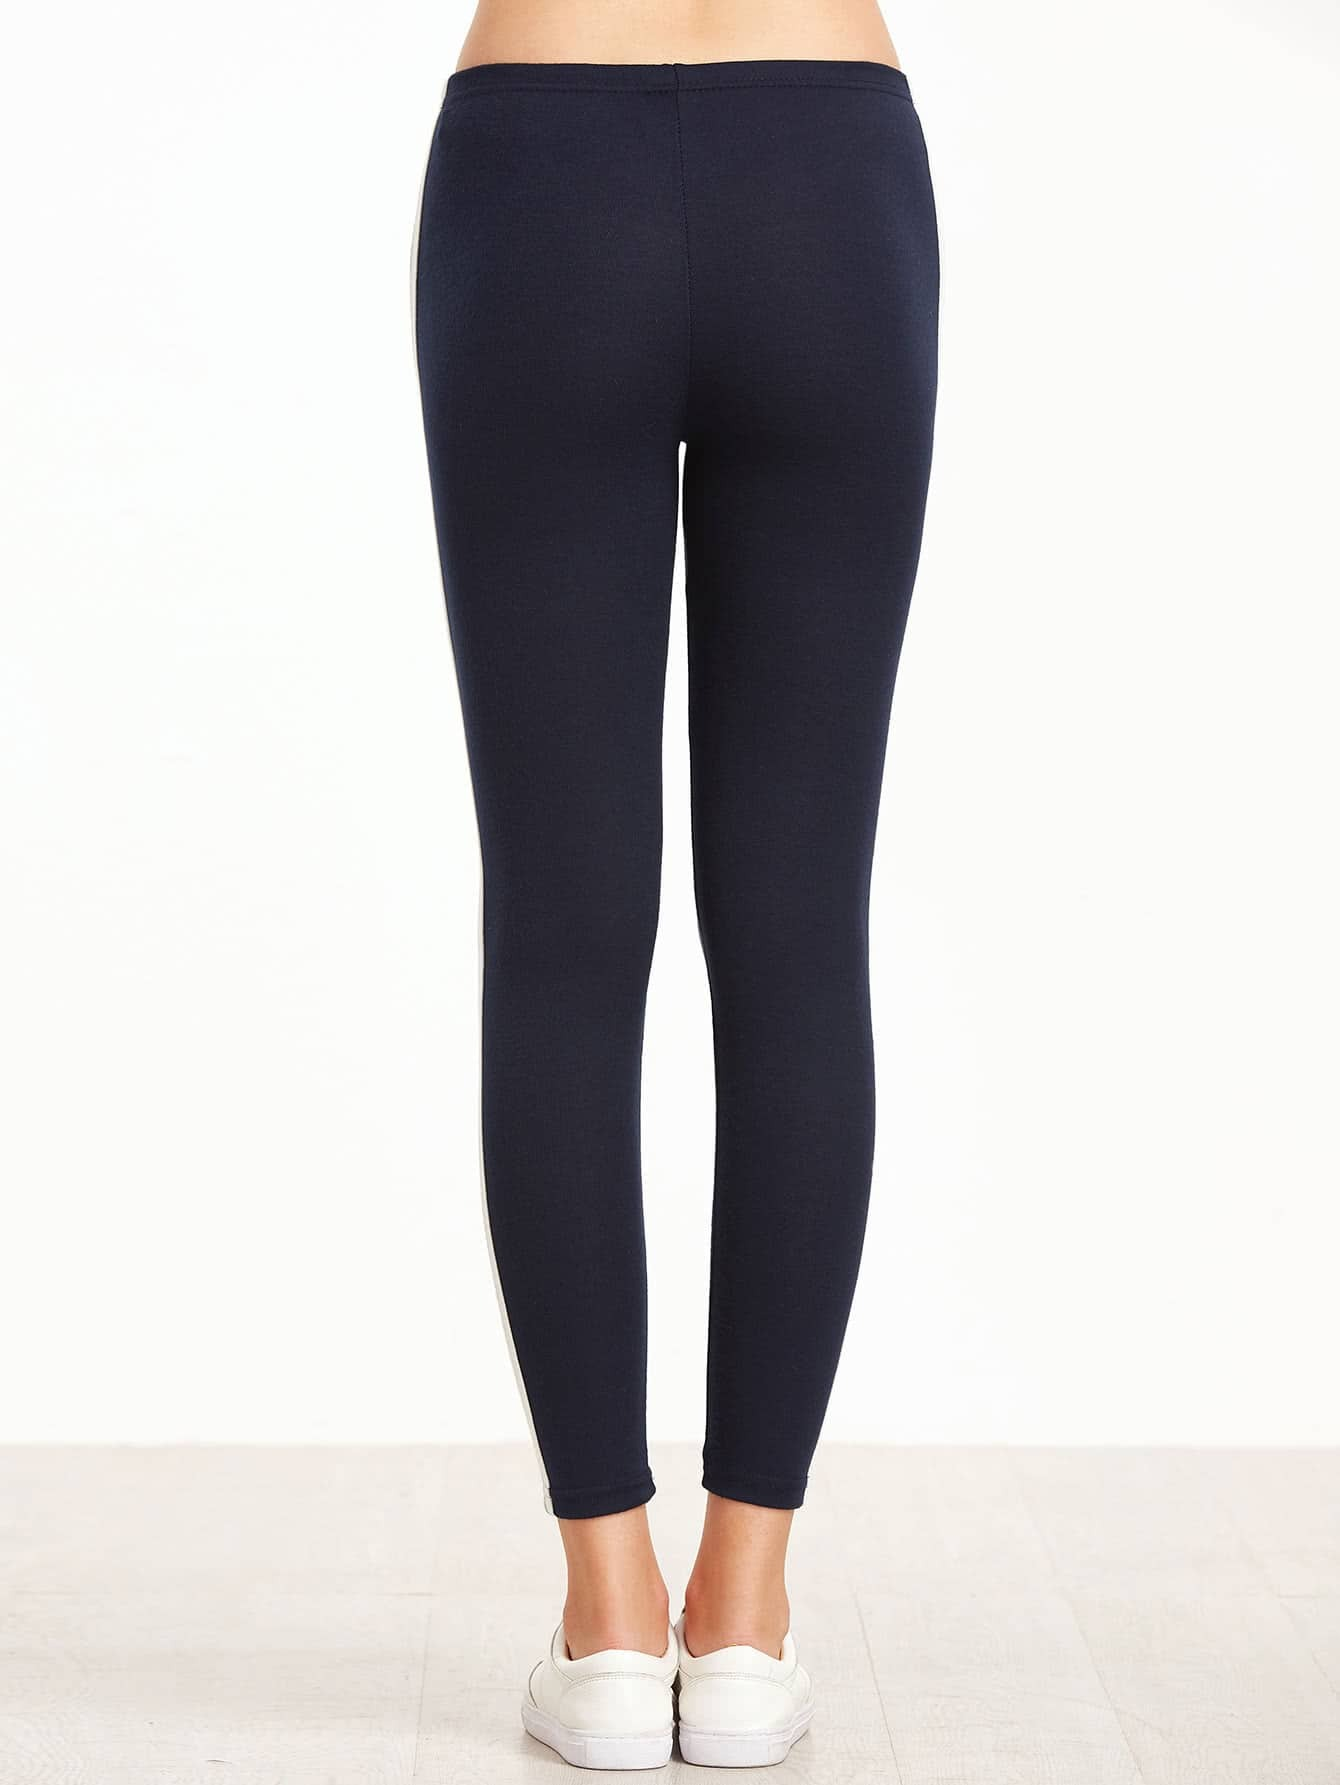 leggings161122321_2